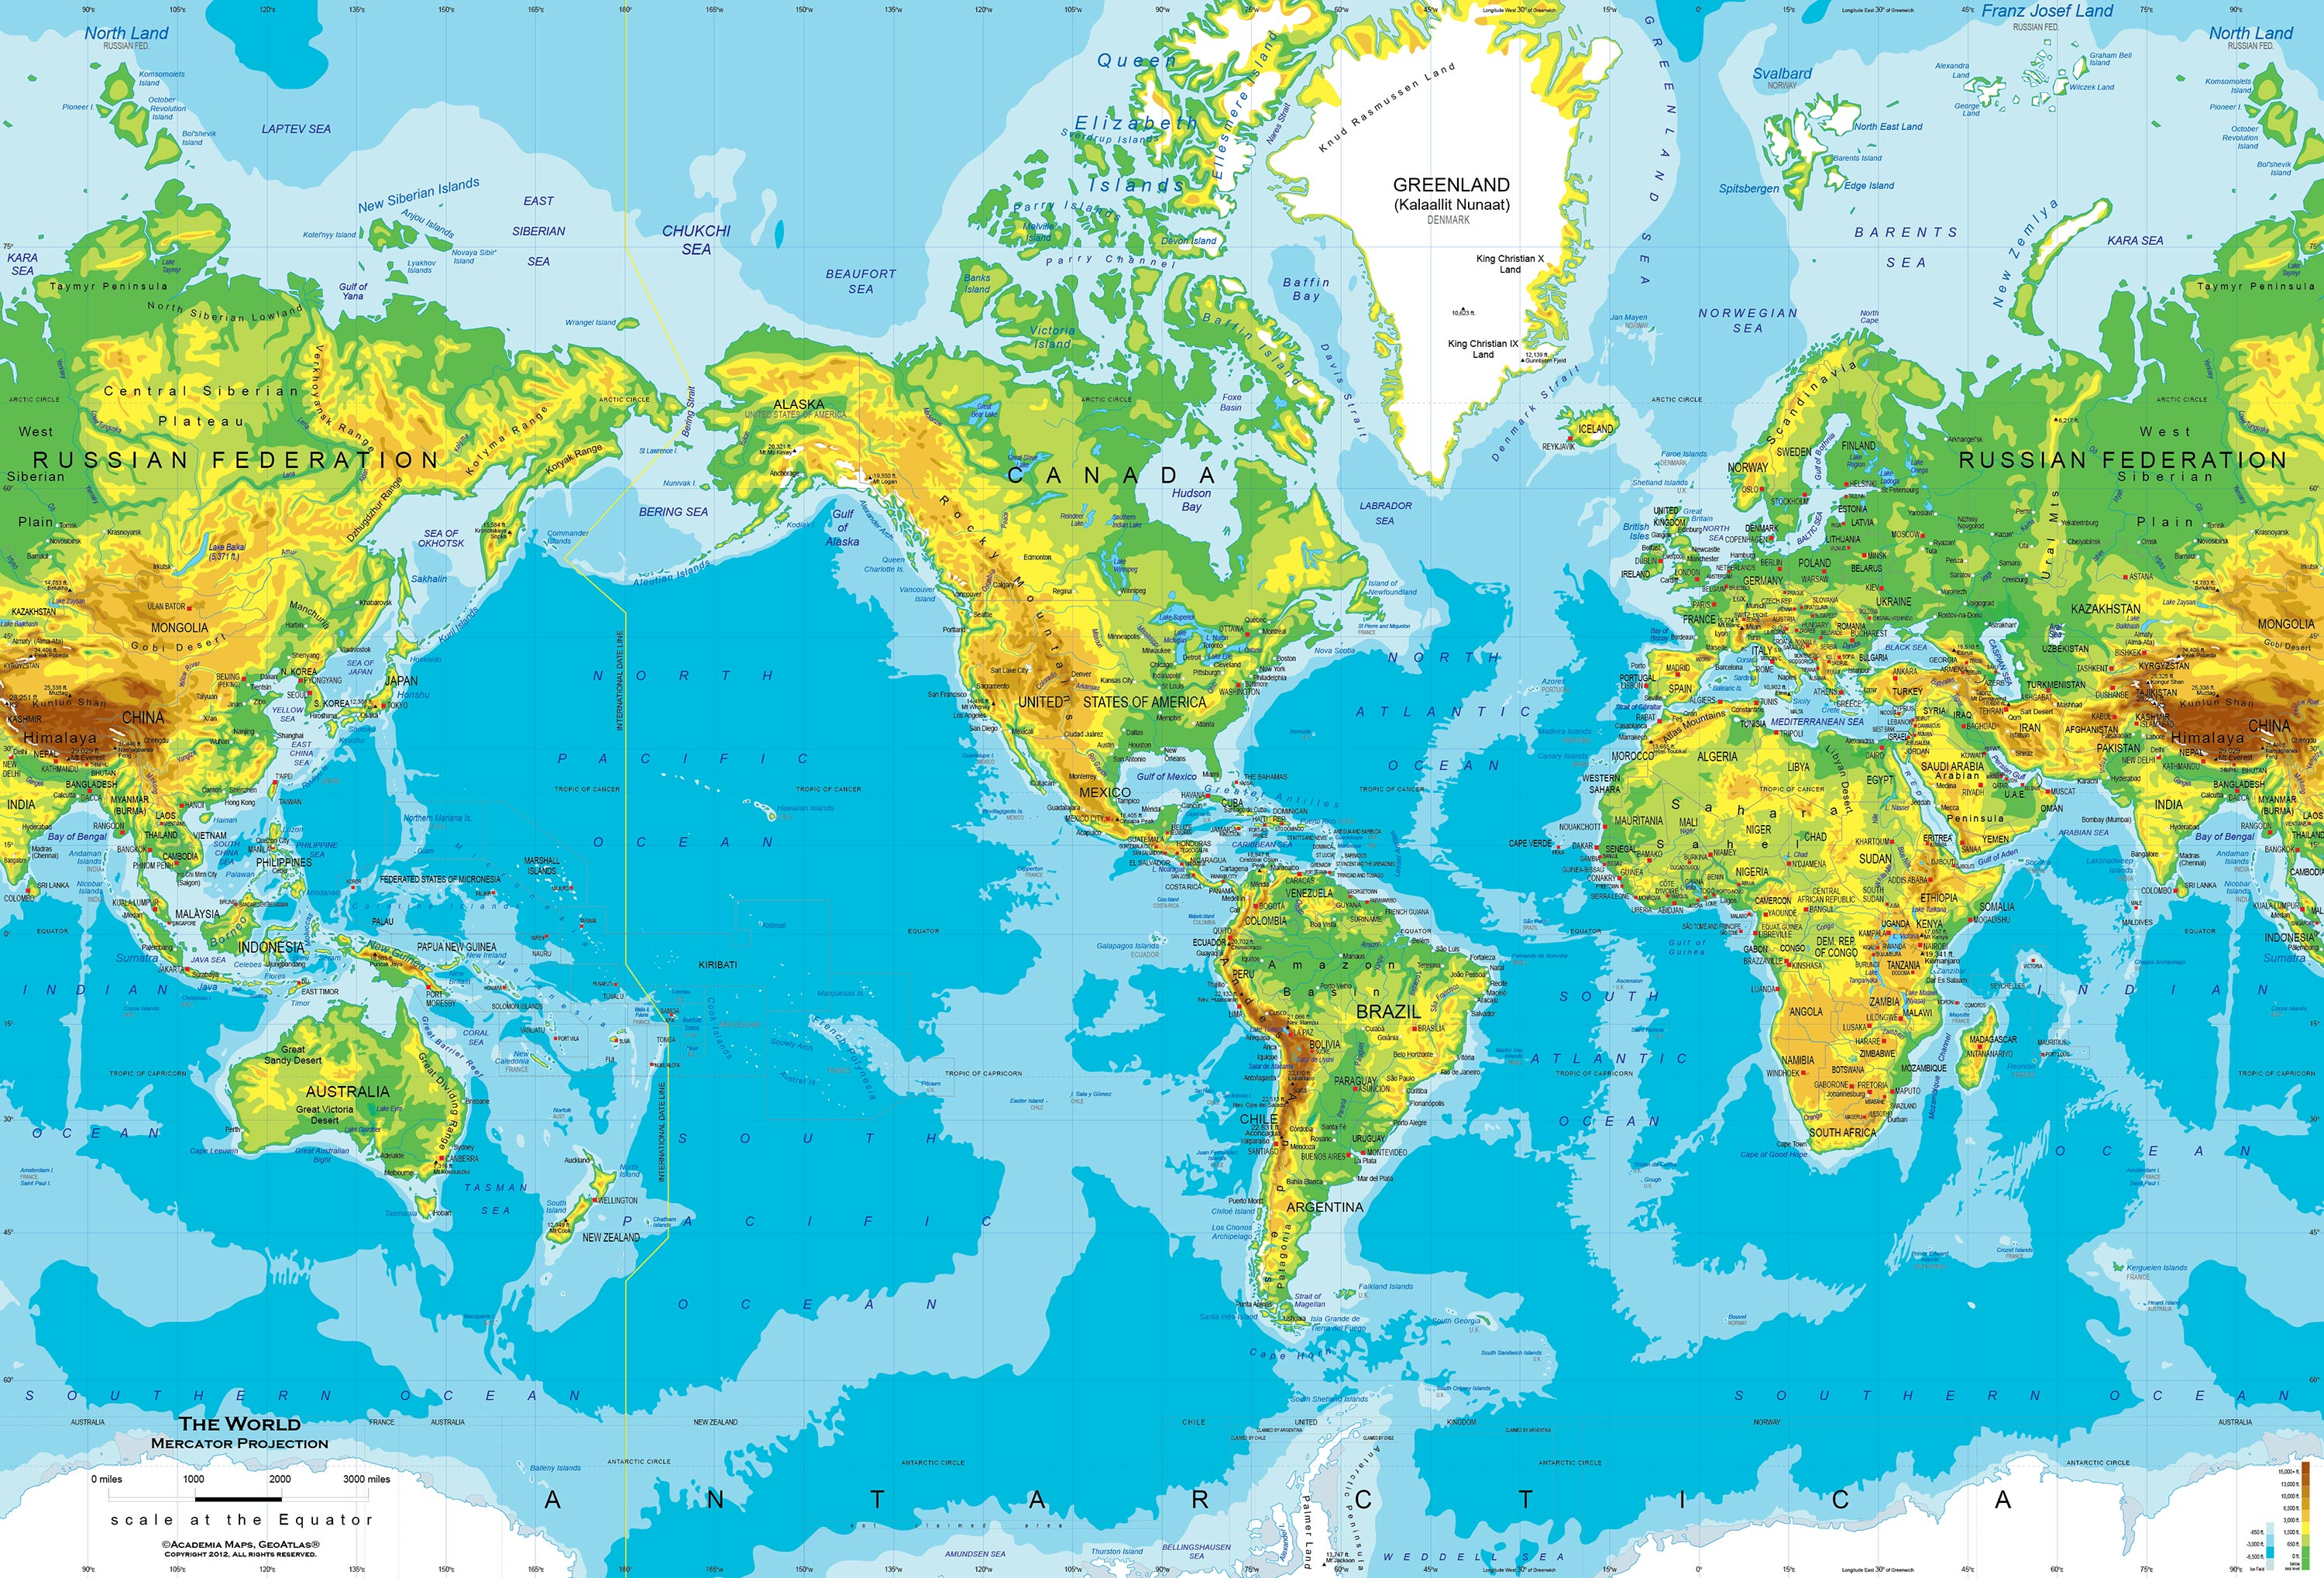 Best hd world map wallpaper hd wallpapers blog old world map desktop wallpaper modafinilsale source 3000x2037 world physical map wallpapers pictures hd wallpapers gumiabroncs Choice Image